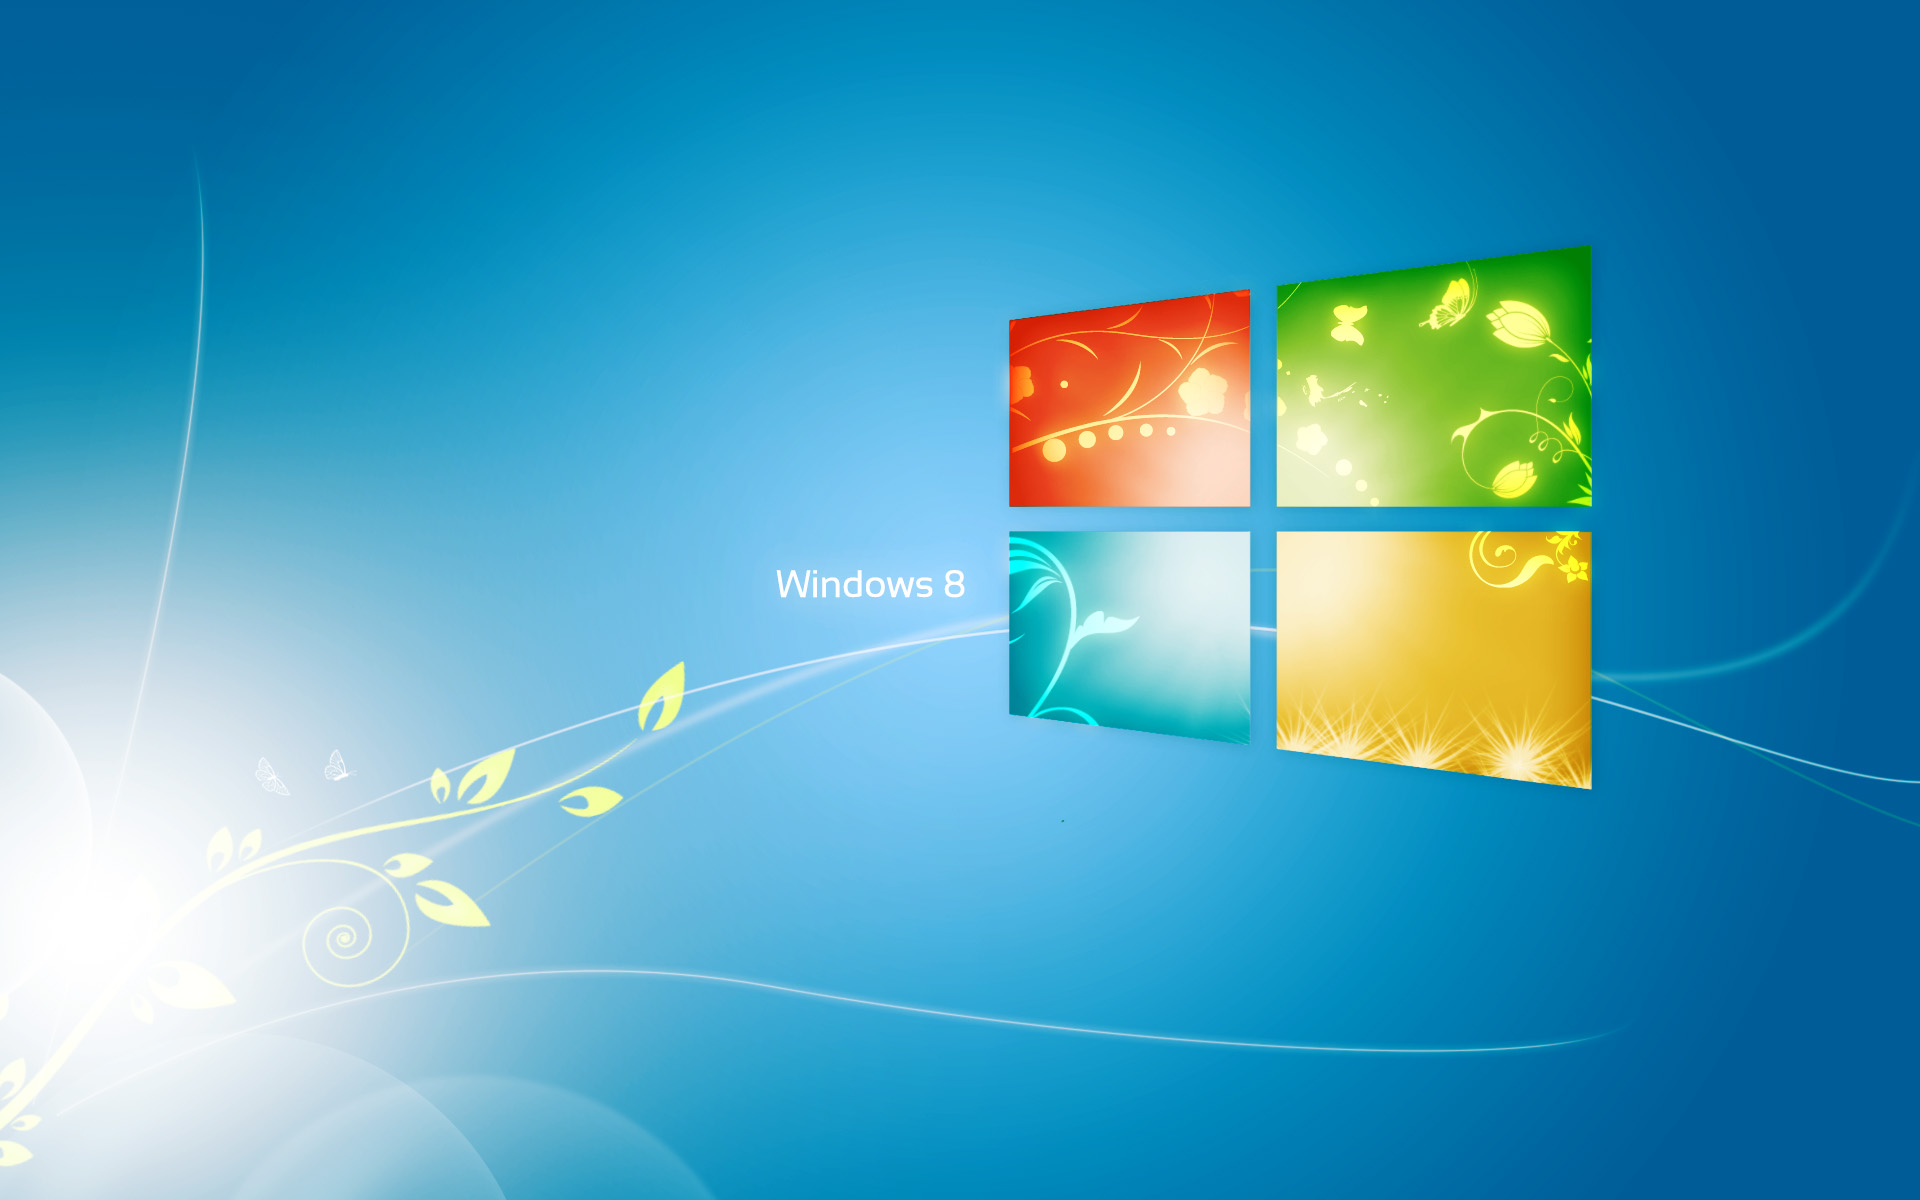 Cool wallpapers for windows 10 wallpapersafari for Change windows